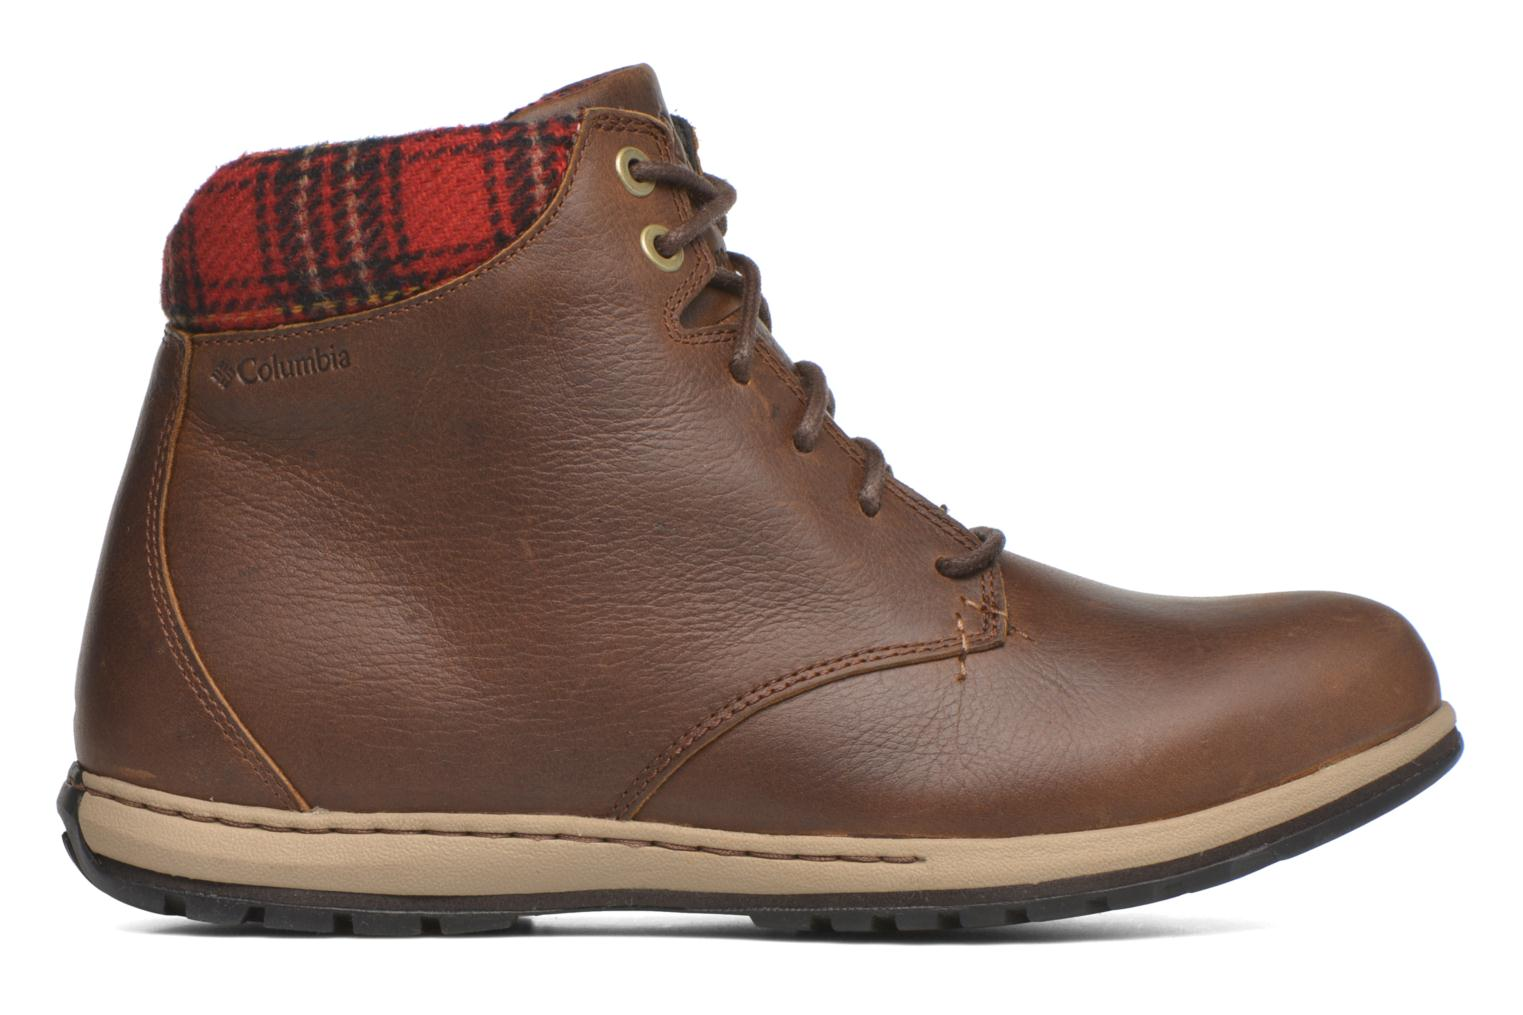 Davenport Xtm Waterproof Omni-Heat Hawk, British Tan